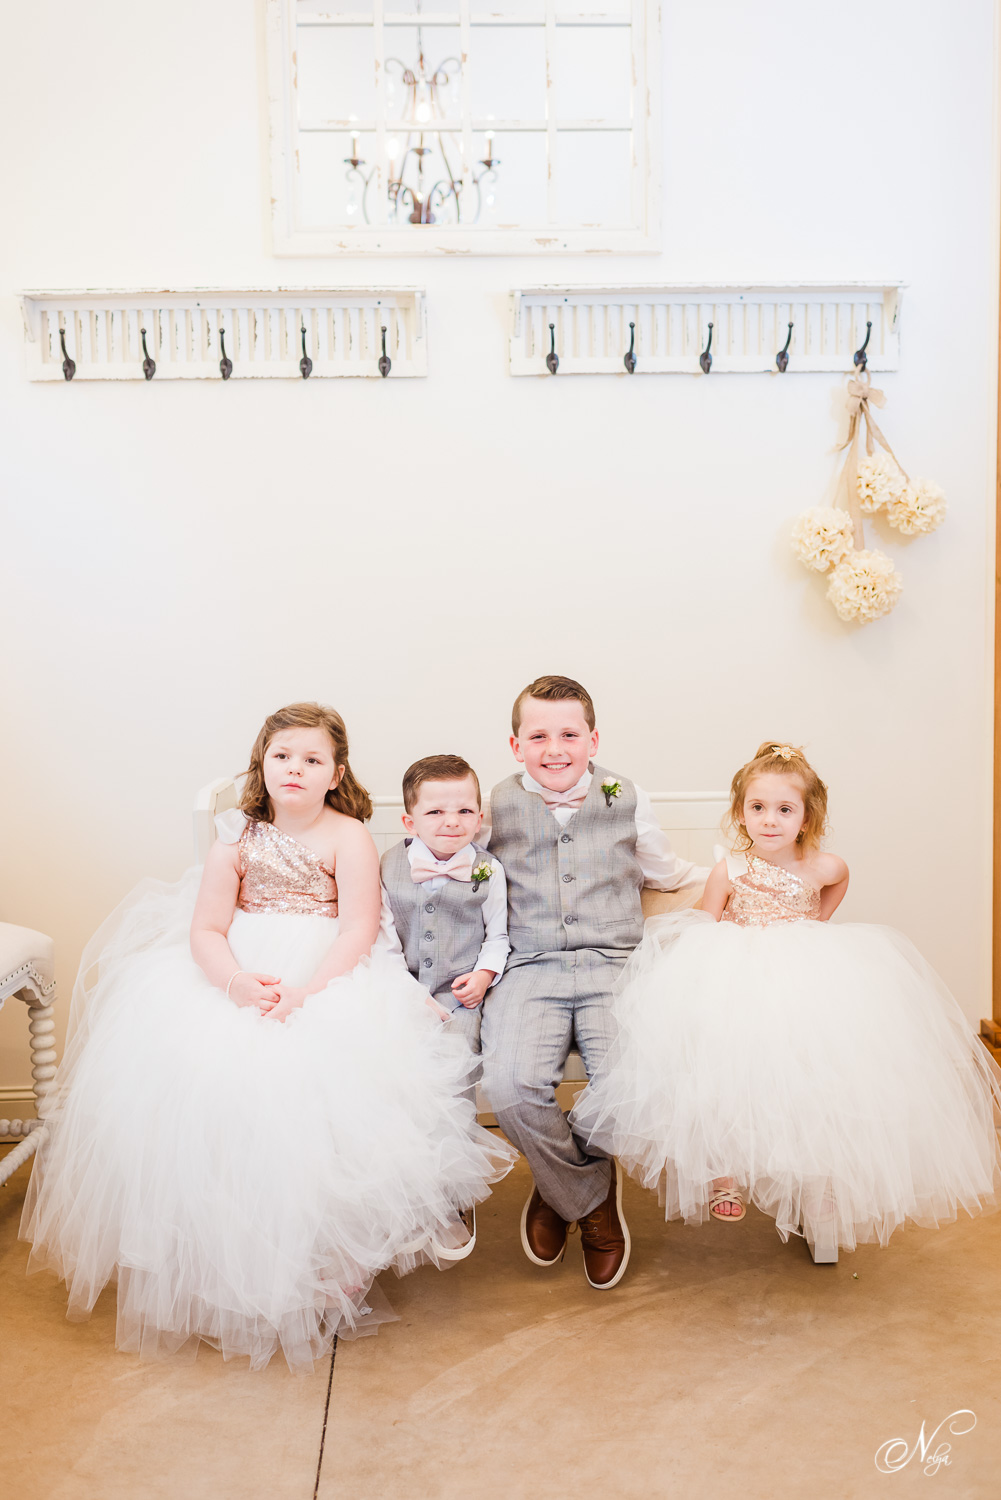 flower girls in fluffy white tulle skirts and ring bearers in gray suits